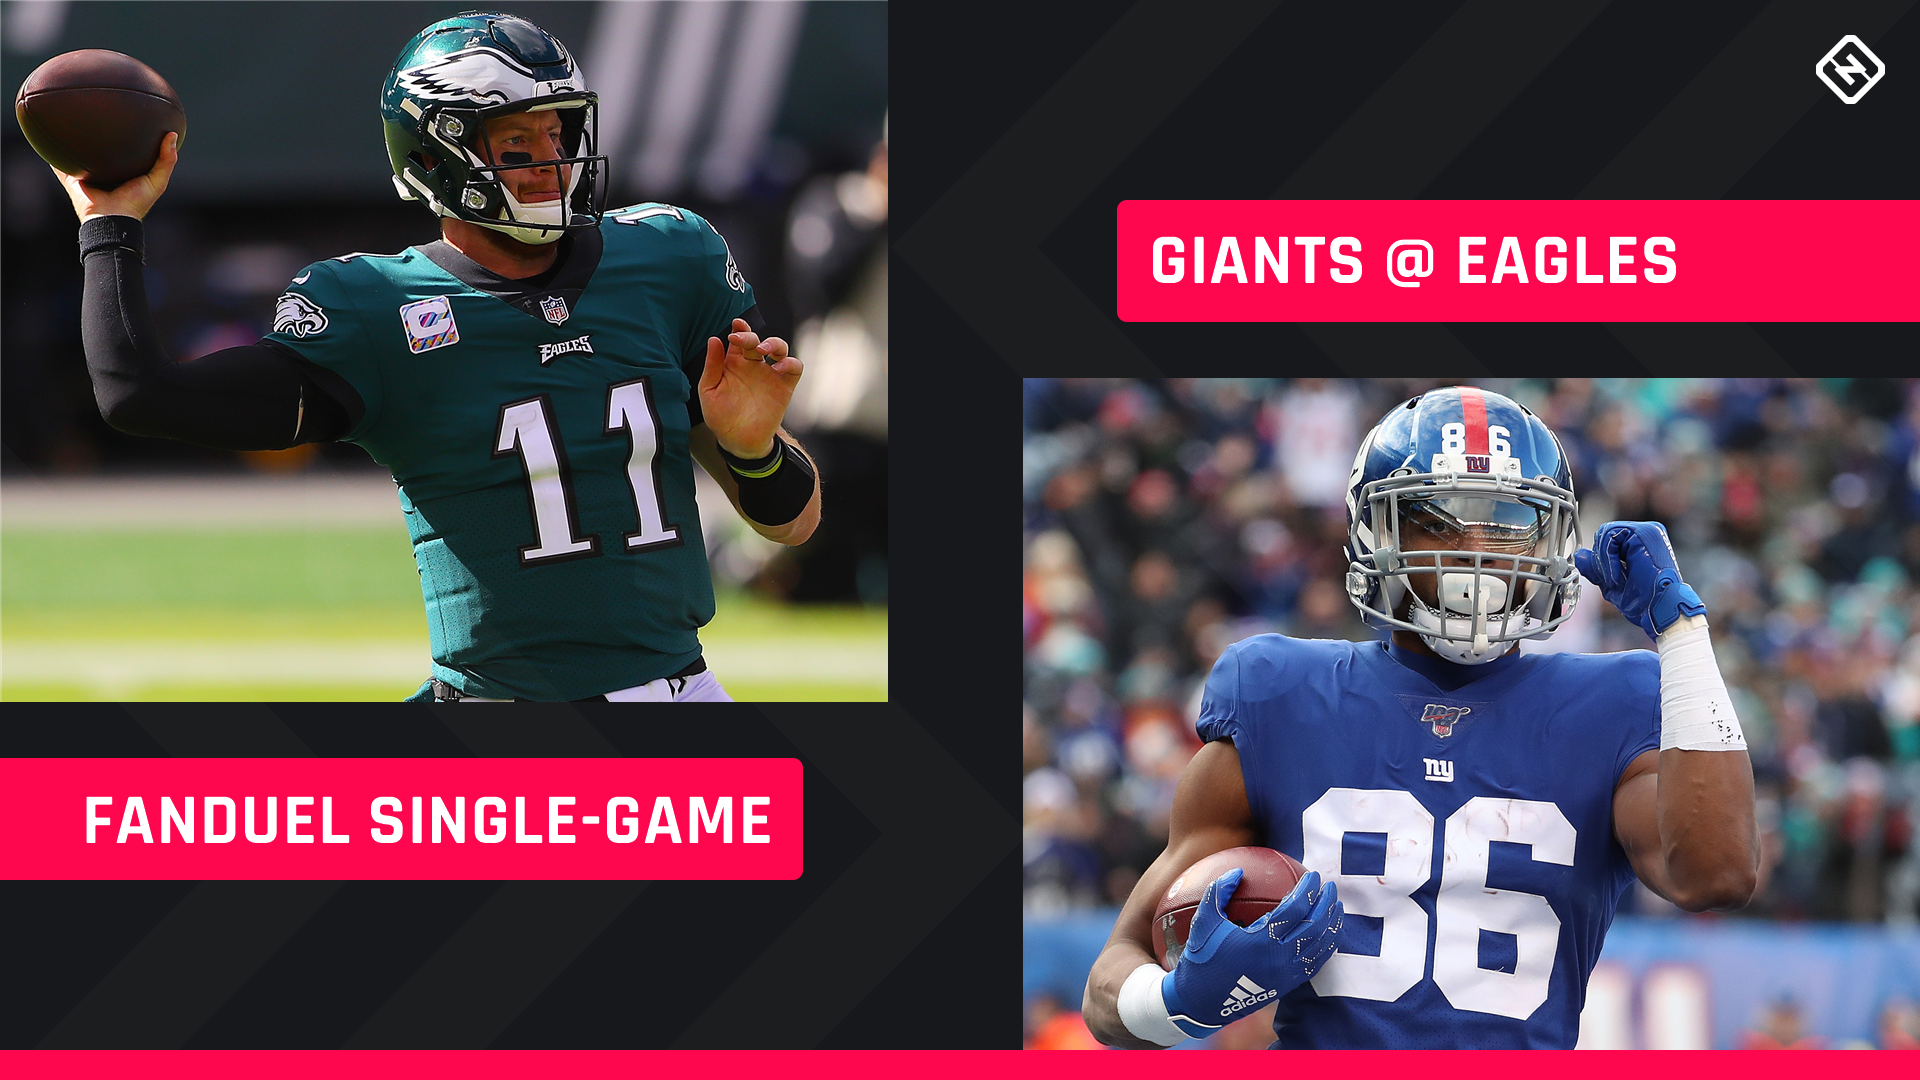 Thursday Night Football FanDuel Picks: NFL DFS lineup advice for Week 7 Eagles-Giants single-game tournaments